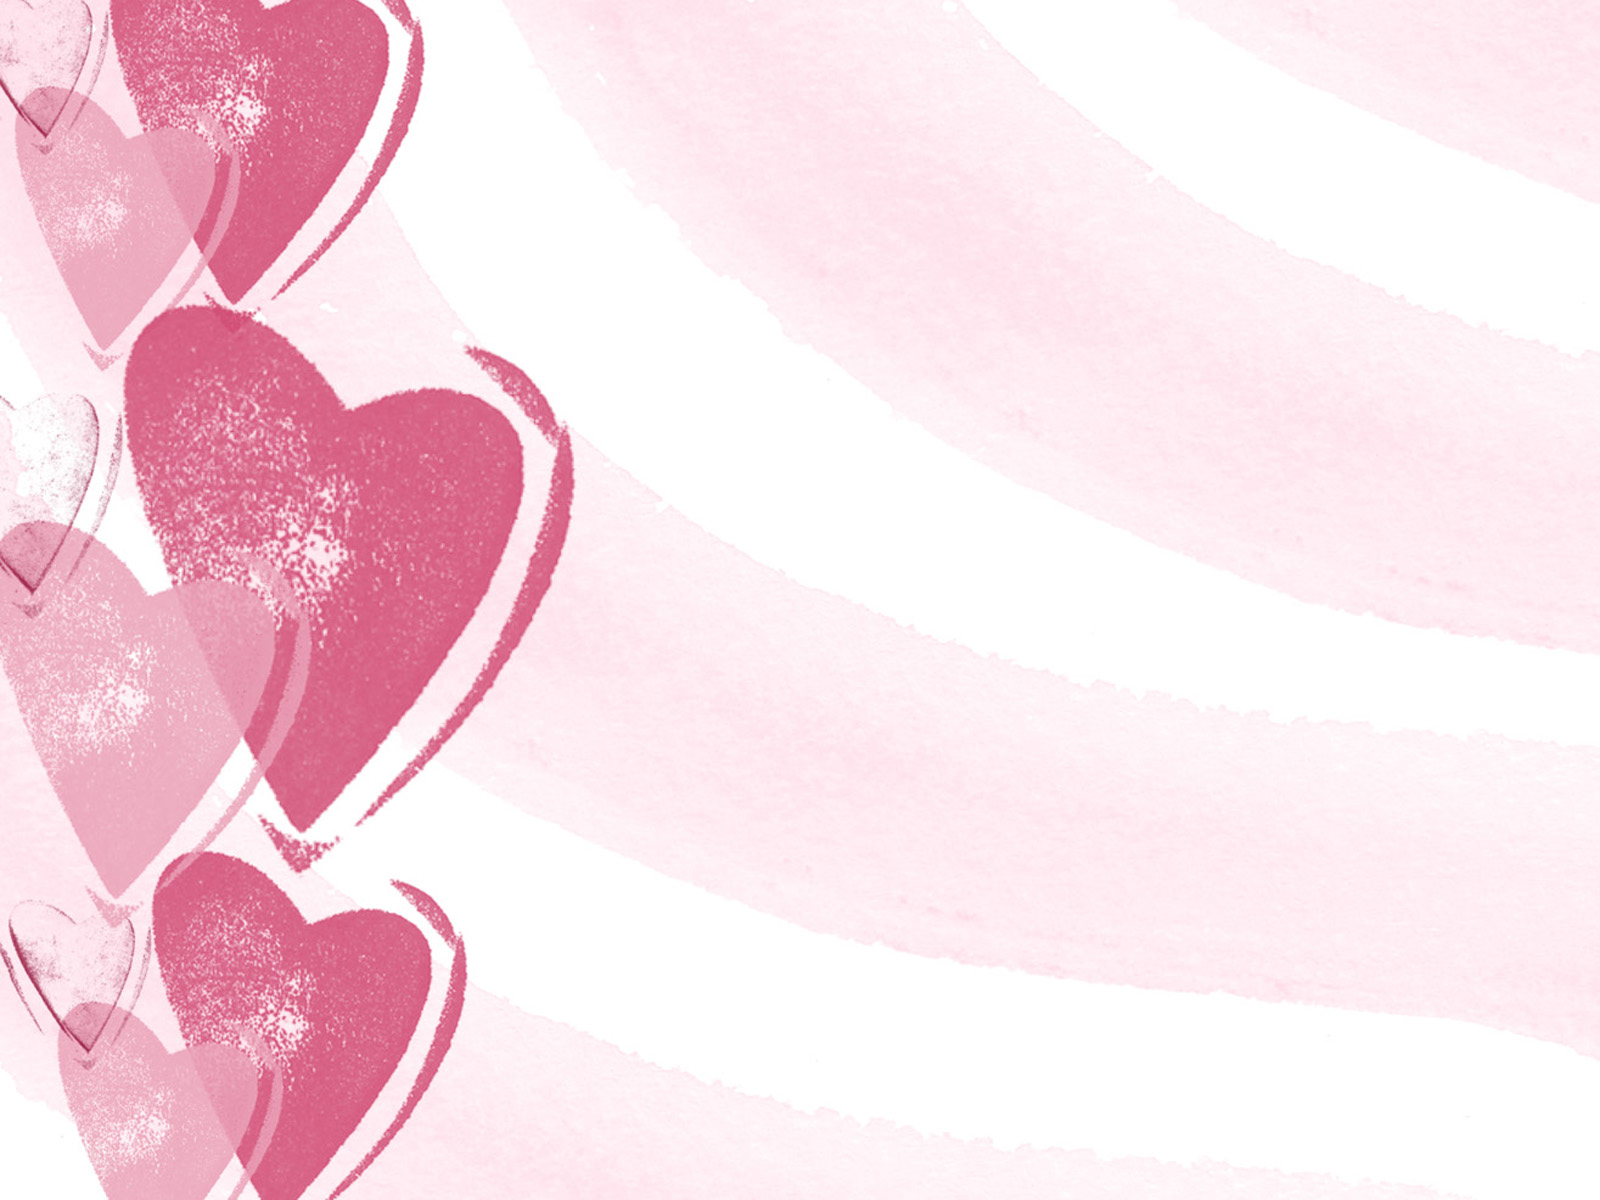 Girly love backgrounds for powerpoint templates ppt backgrounds toneelgroepblik Choice Image